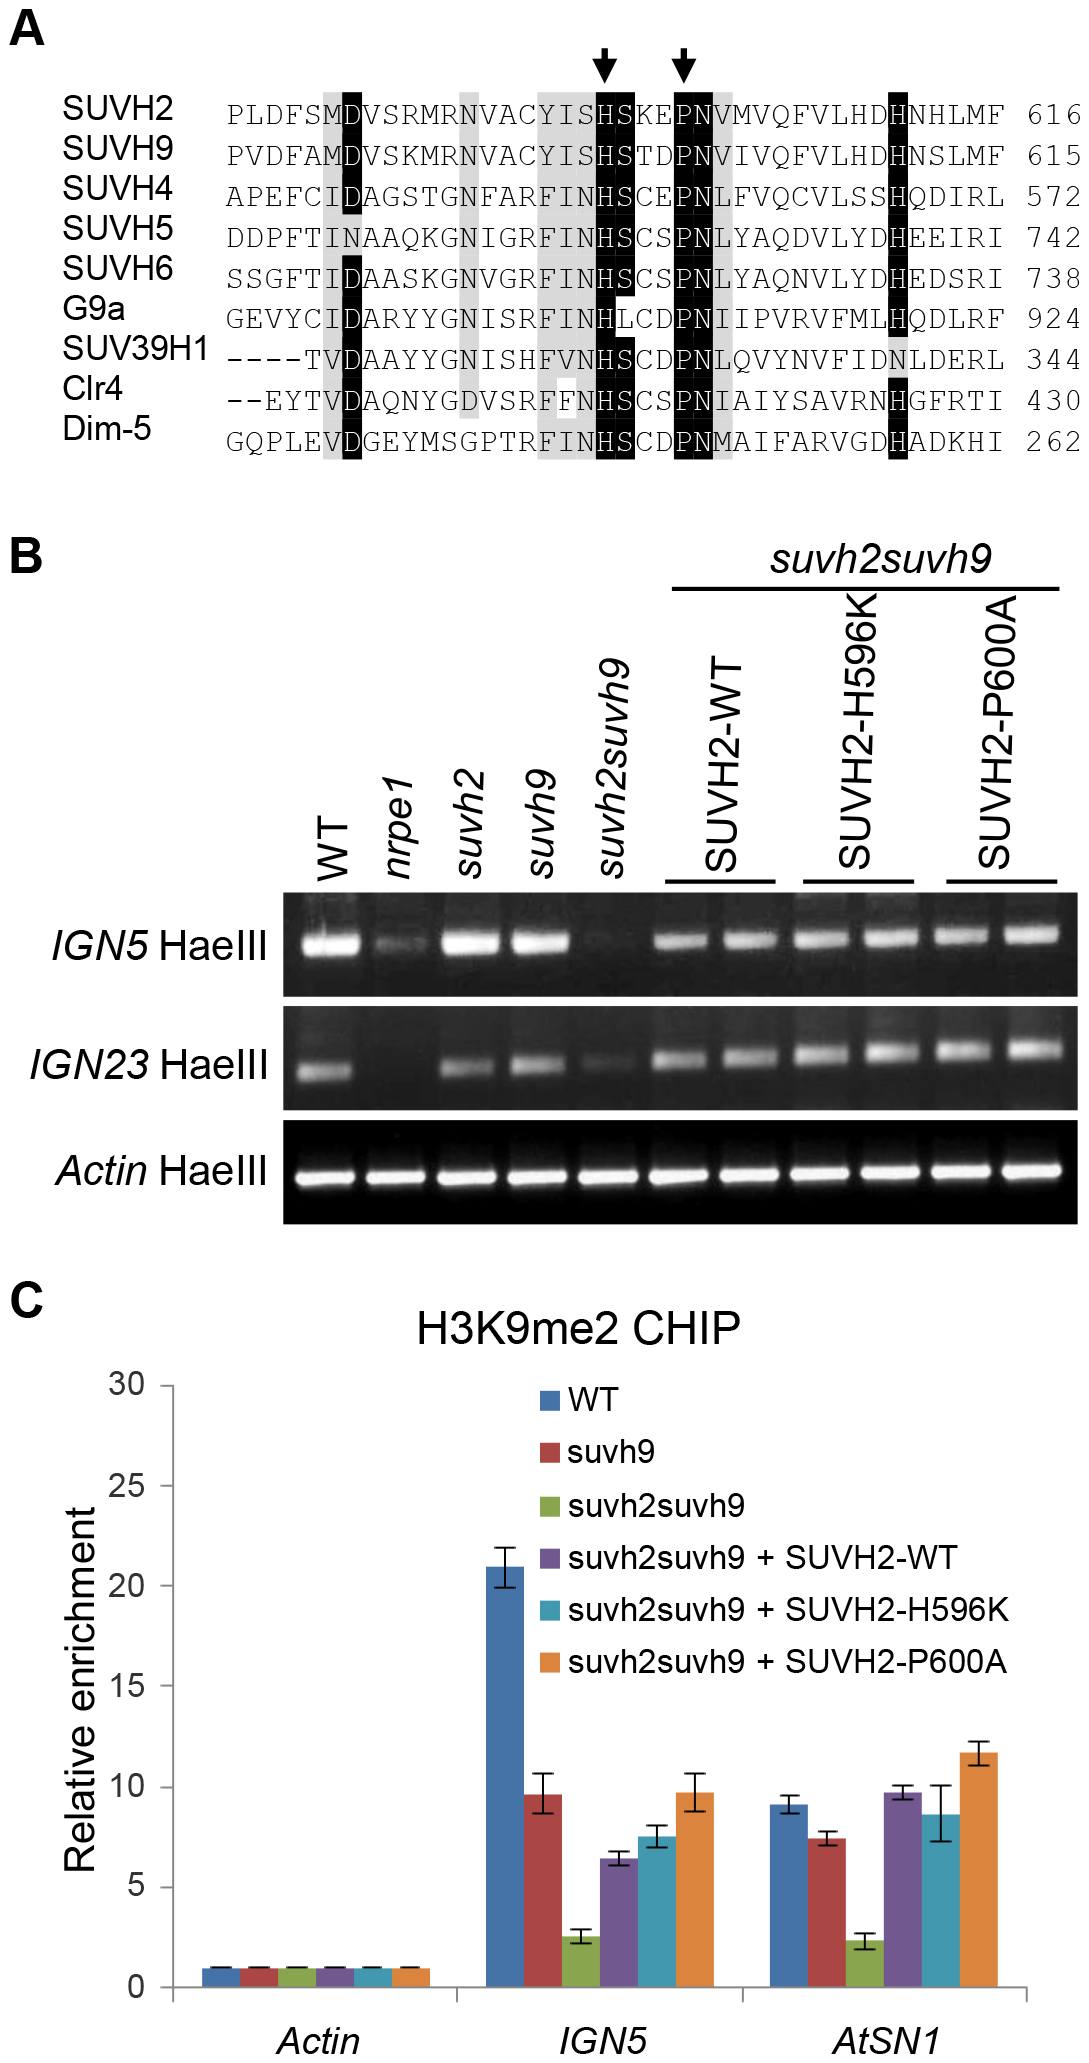 Mutation of the conserved SET domain in SUVH2 has no effect on DNA methylation and H3K9me2 at RdDM loci.